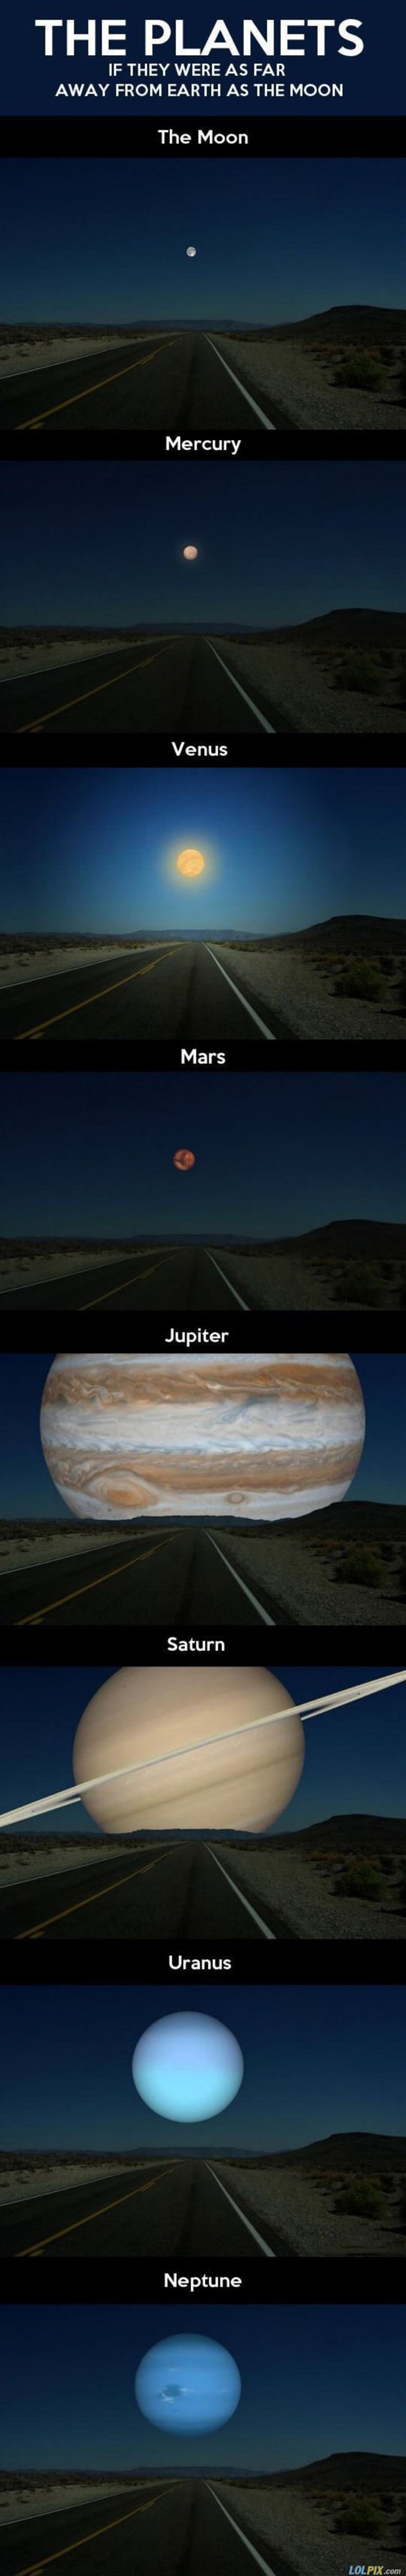 if the planets were the same distance as the moon